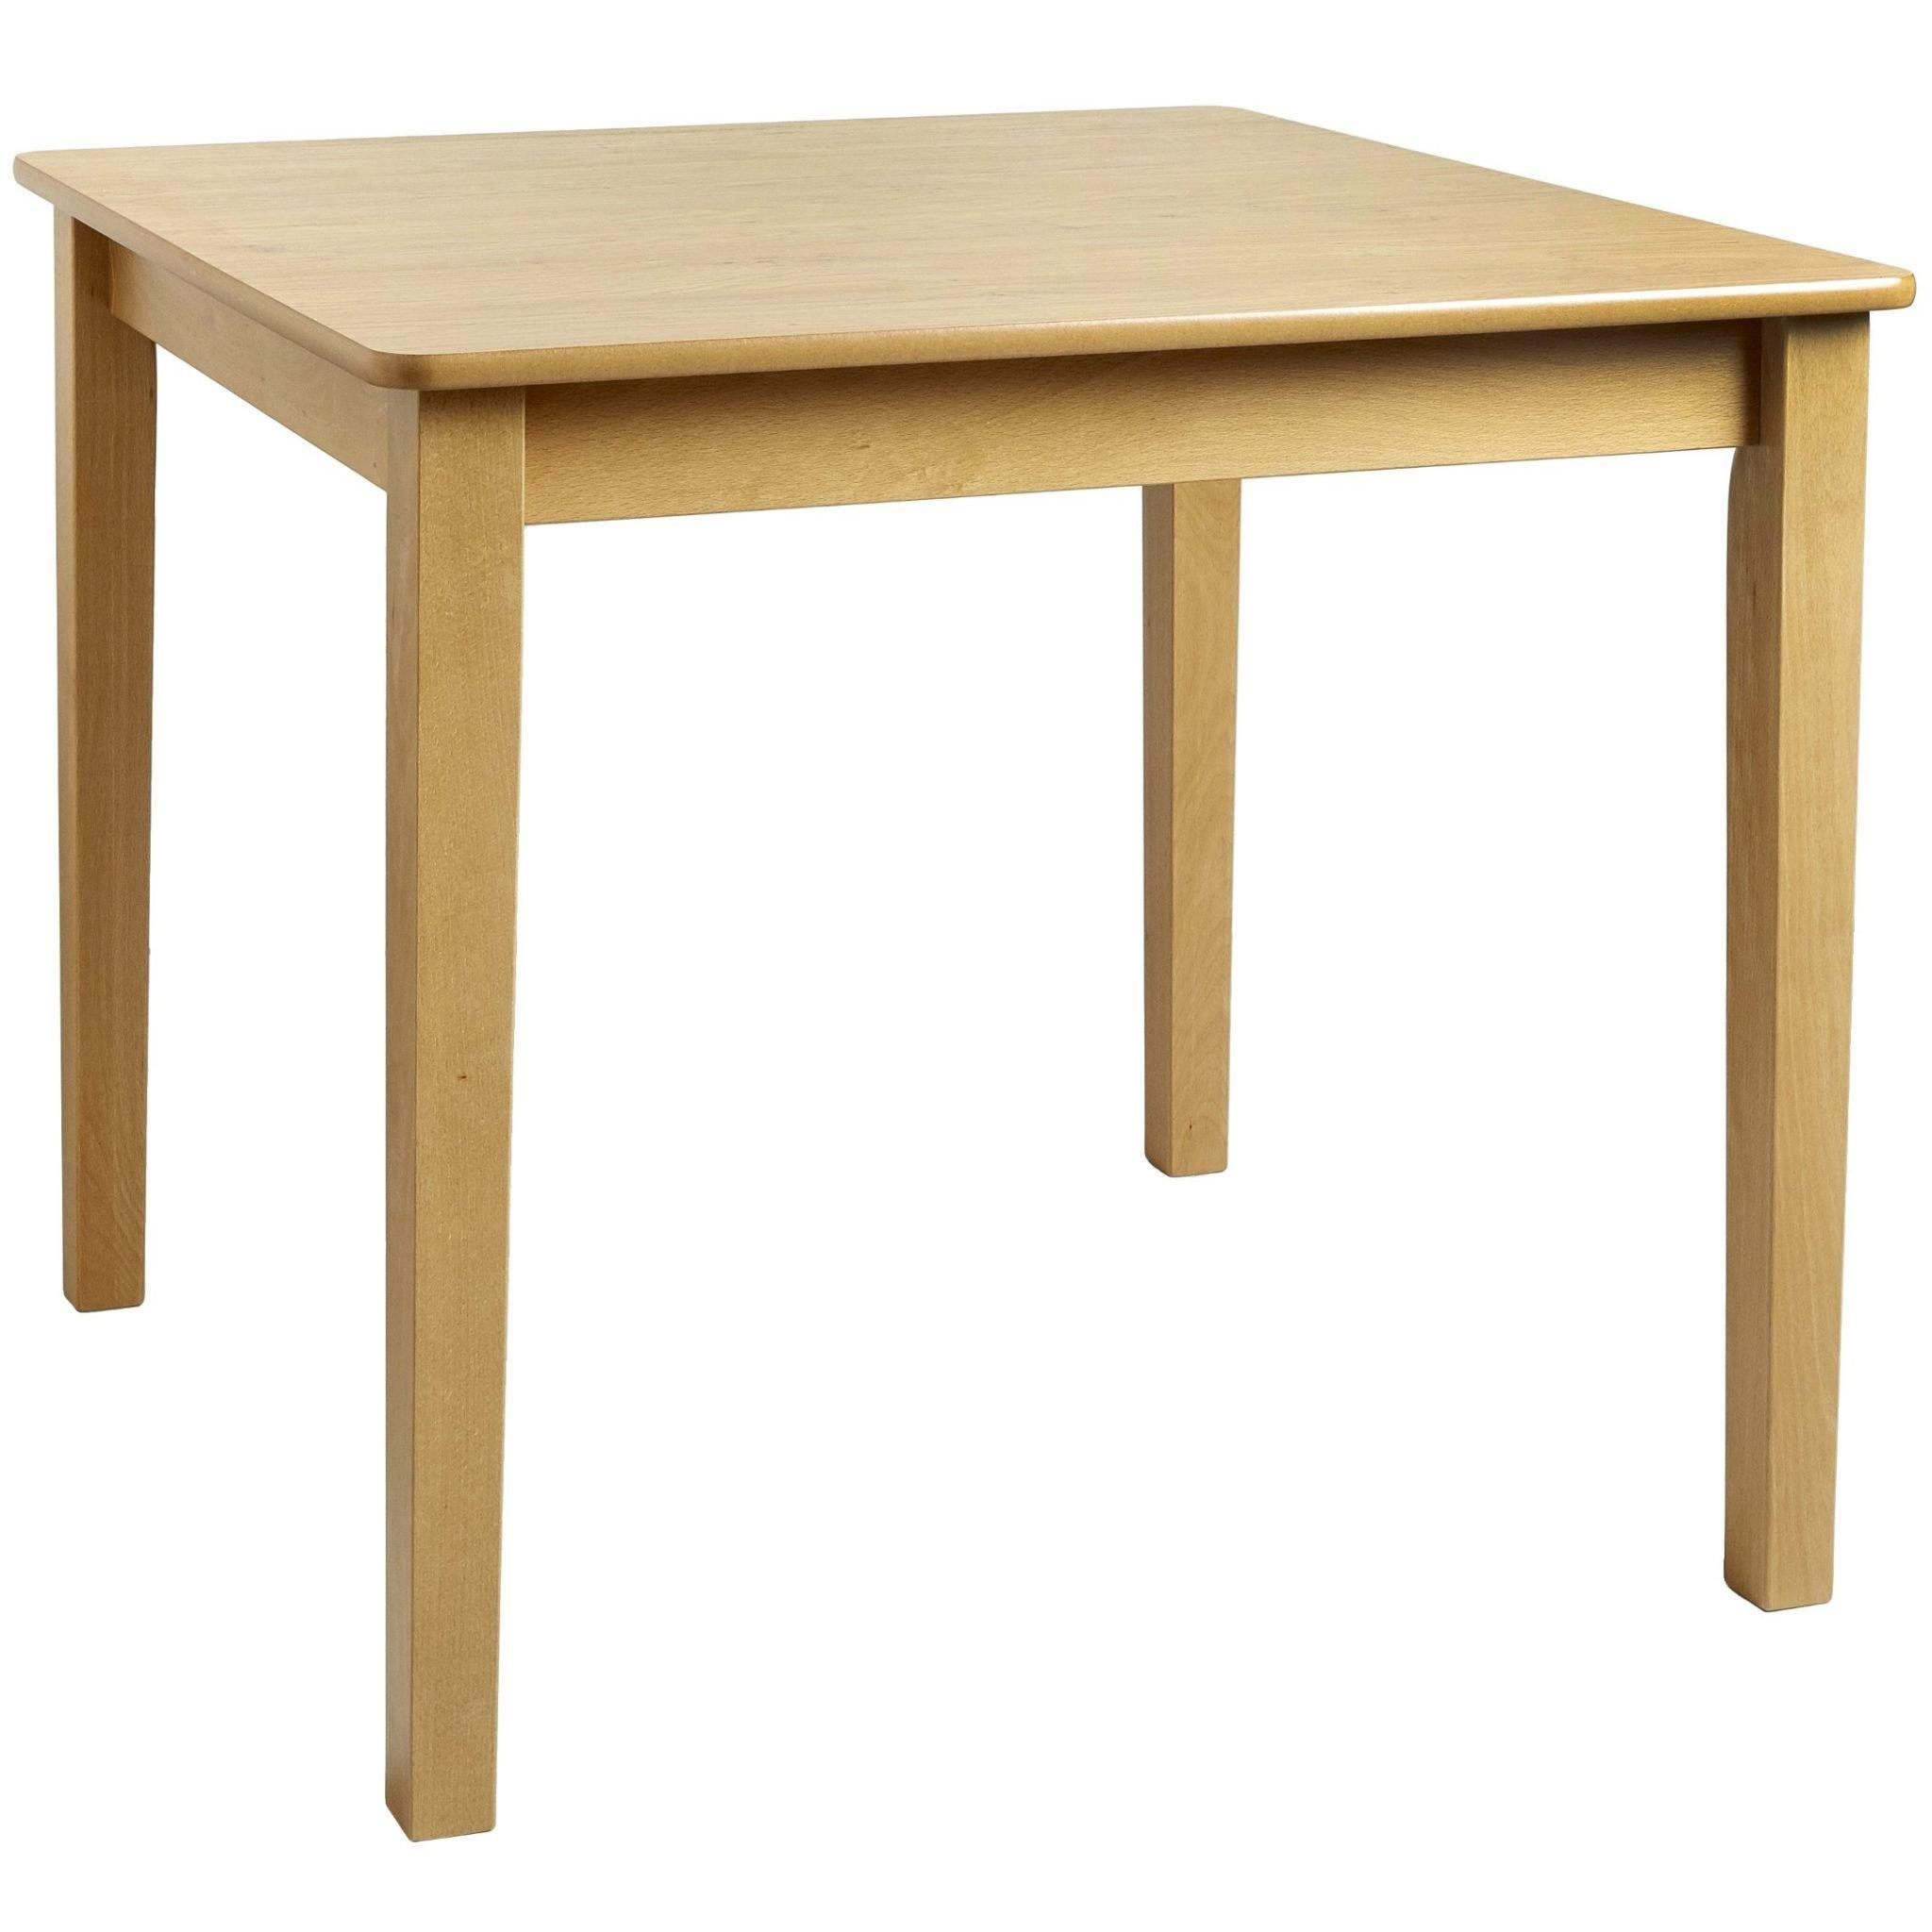 Earlwood Square Dining Table